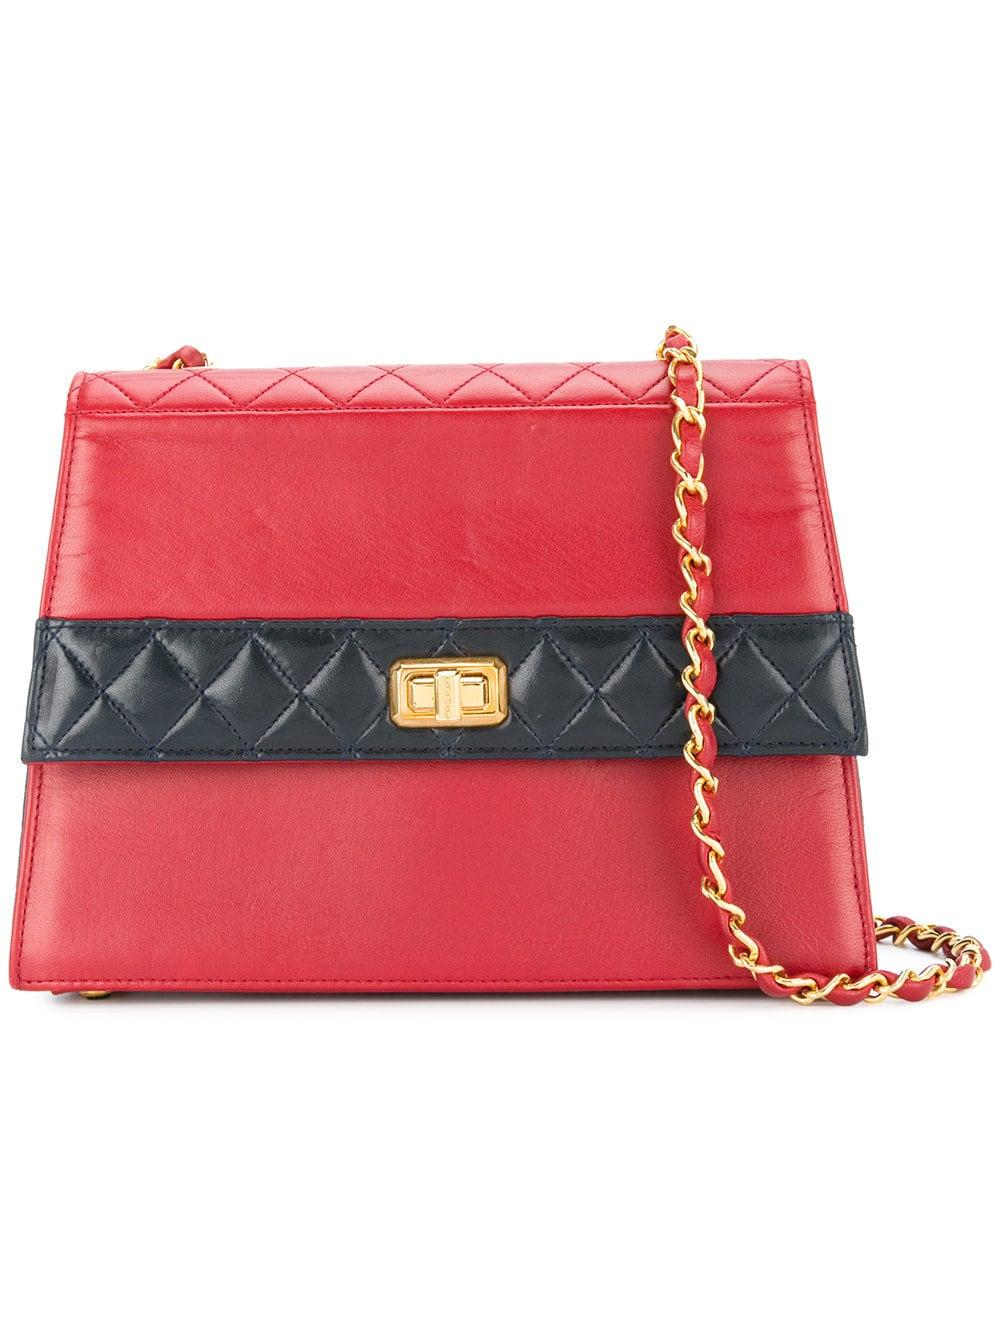 ccf614db1d3001 Chanel Pre-Owned Quilted Structured Shoulder Bag In Red | ModeSens